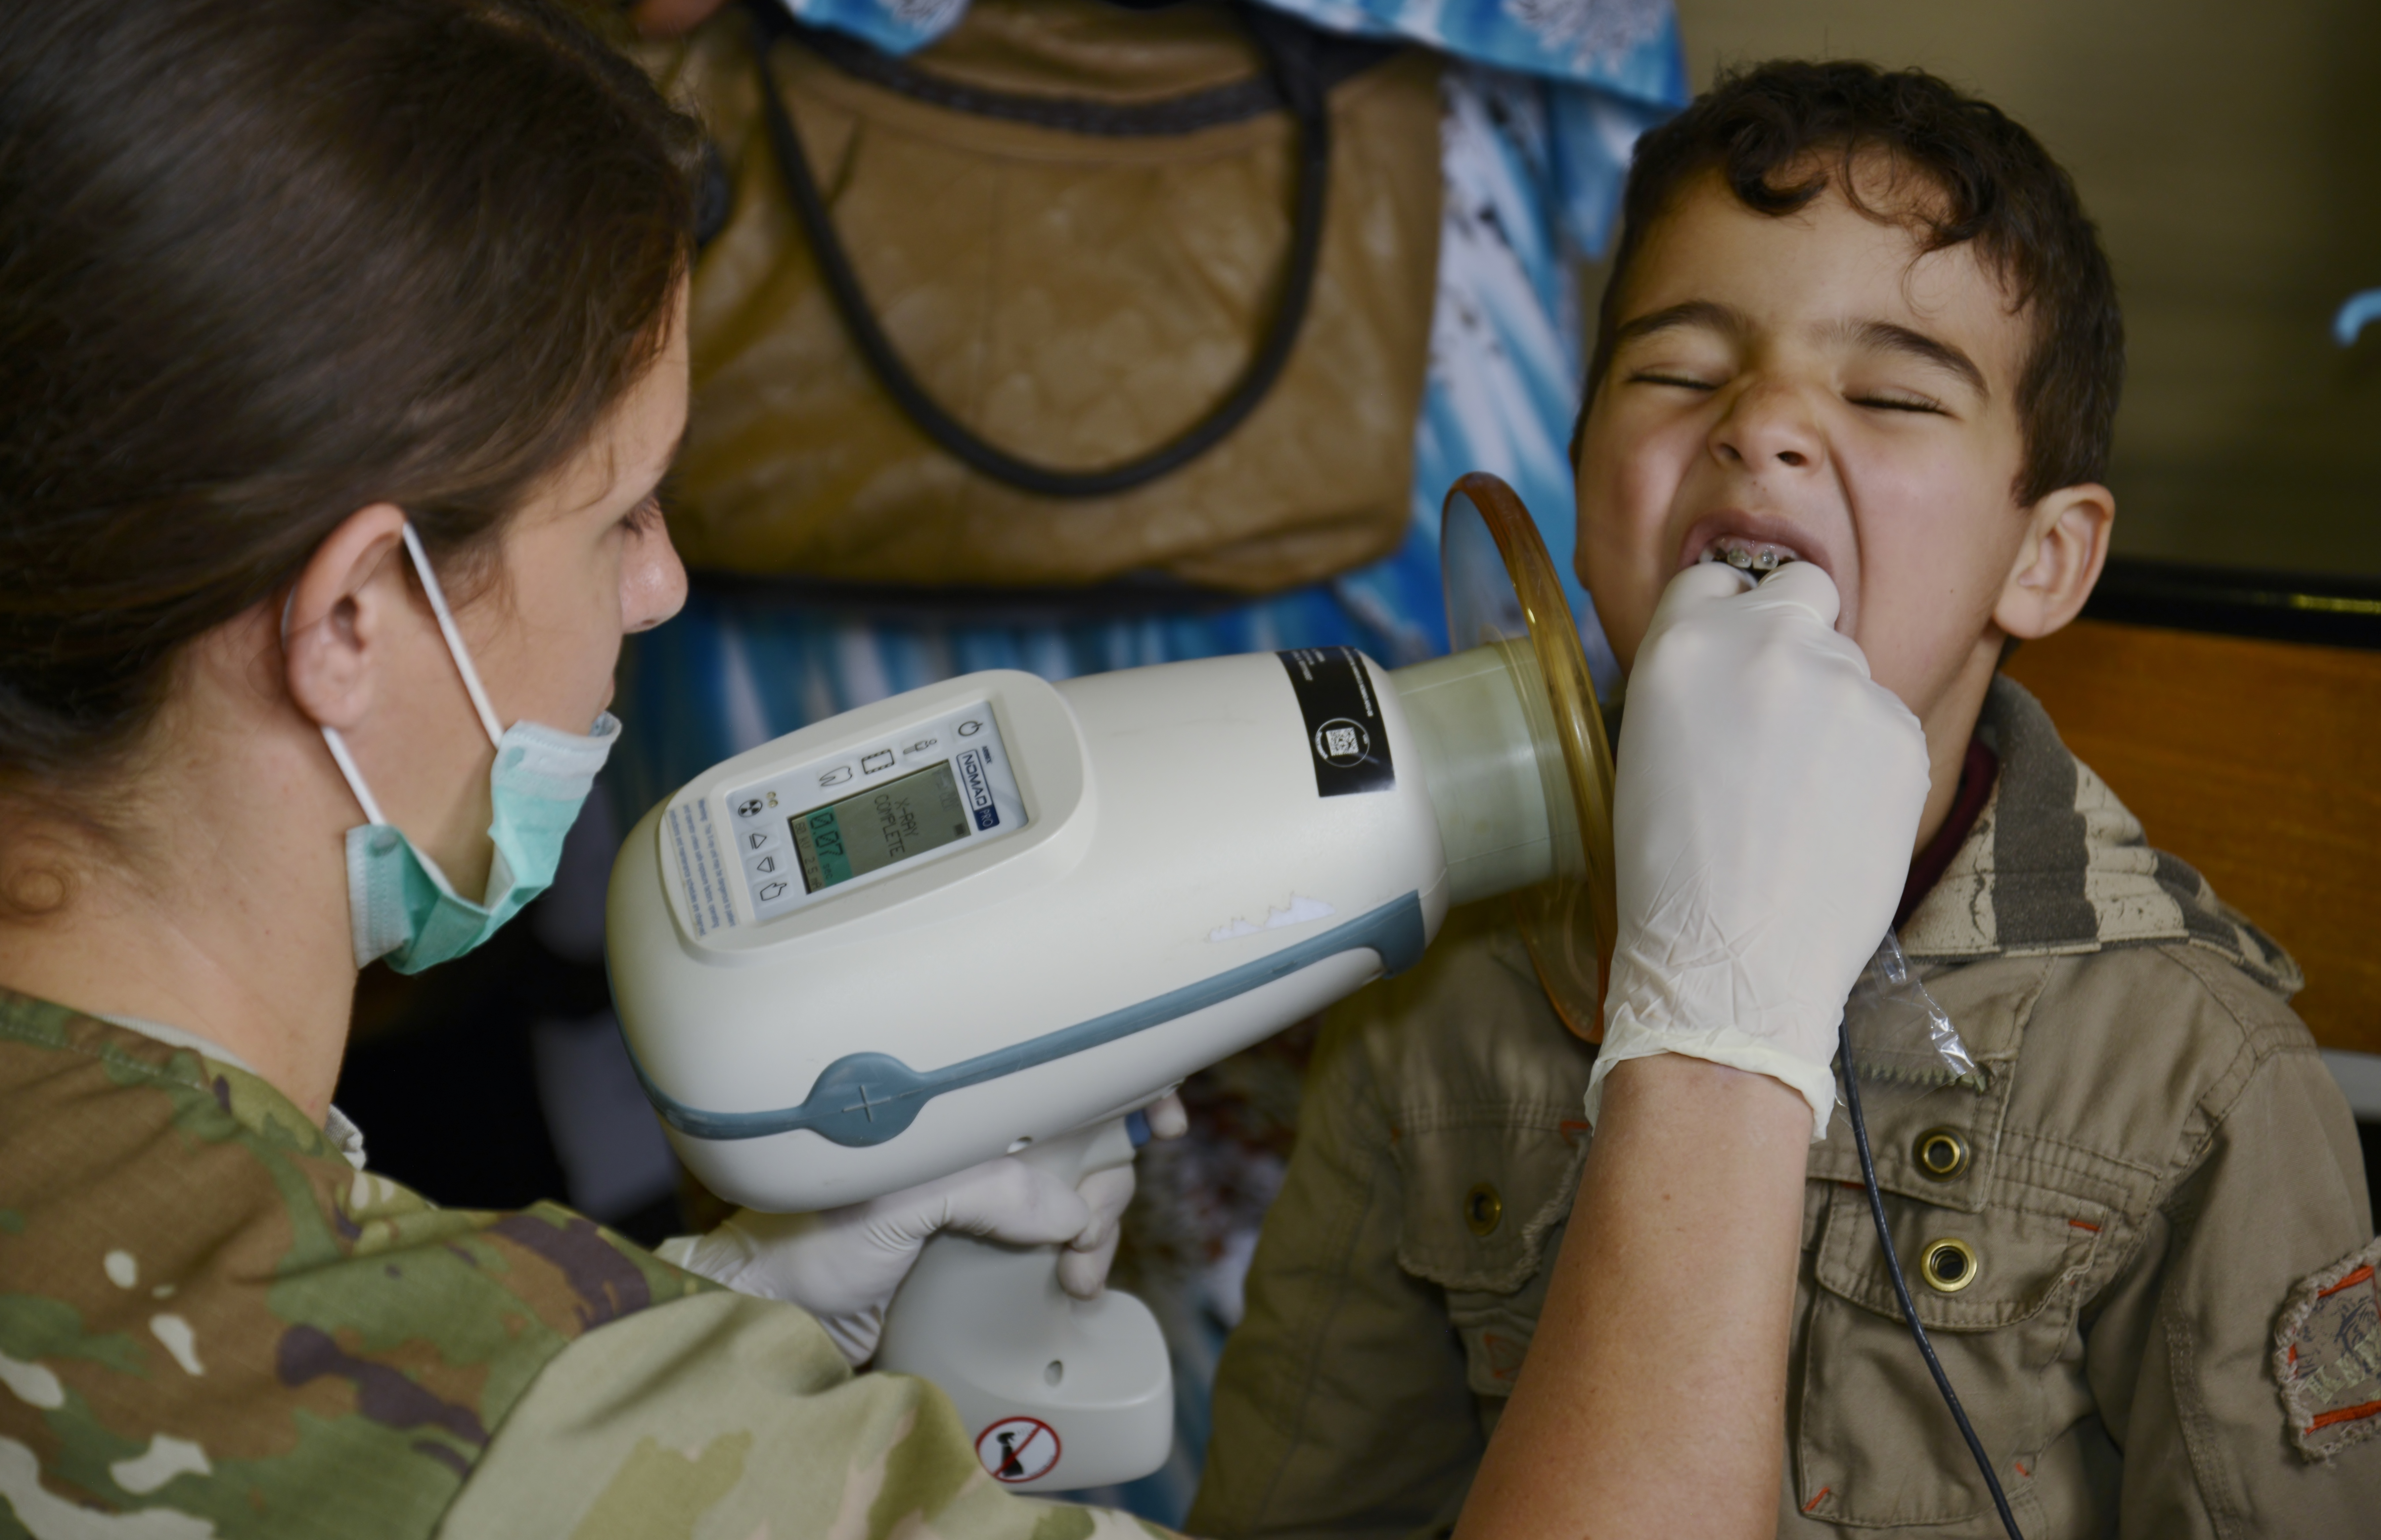 Sergeant Samantha Miller, a dental technician and member of the Utah Army National Guard, takes a dental x-ray on a boy during the Humanitarian Civic Assistance component of Exercise African Lion 2018 in Bounaamane, Morocco, April 24, 2018.  Exercise African Lion 2018 is a Chairman of the Joint Chiefs of Staff-sponsored, U.S. African Command-scheduled, U.S. Marine Corps Forces Europe and Africa-led, joint and combined exercise conducted in the Kingdom of Morocco. African Lion offers an opportunity to improve interoperability and cooperation while demonstrating the strong military bond that exists between the participating nations. (U.S. Army National Guard photo by Maj. Samantha Madsen)